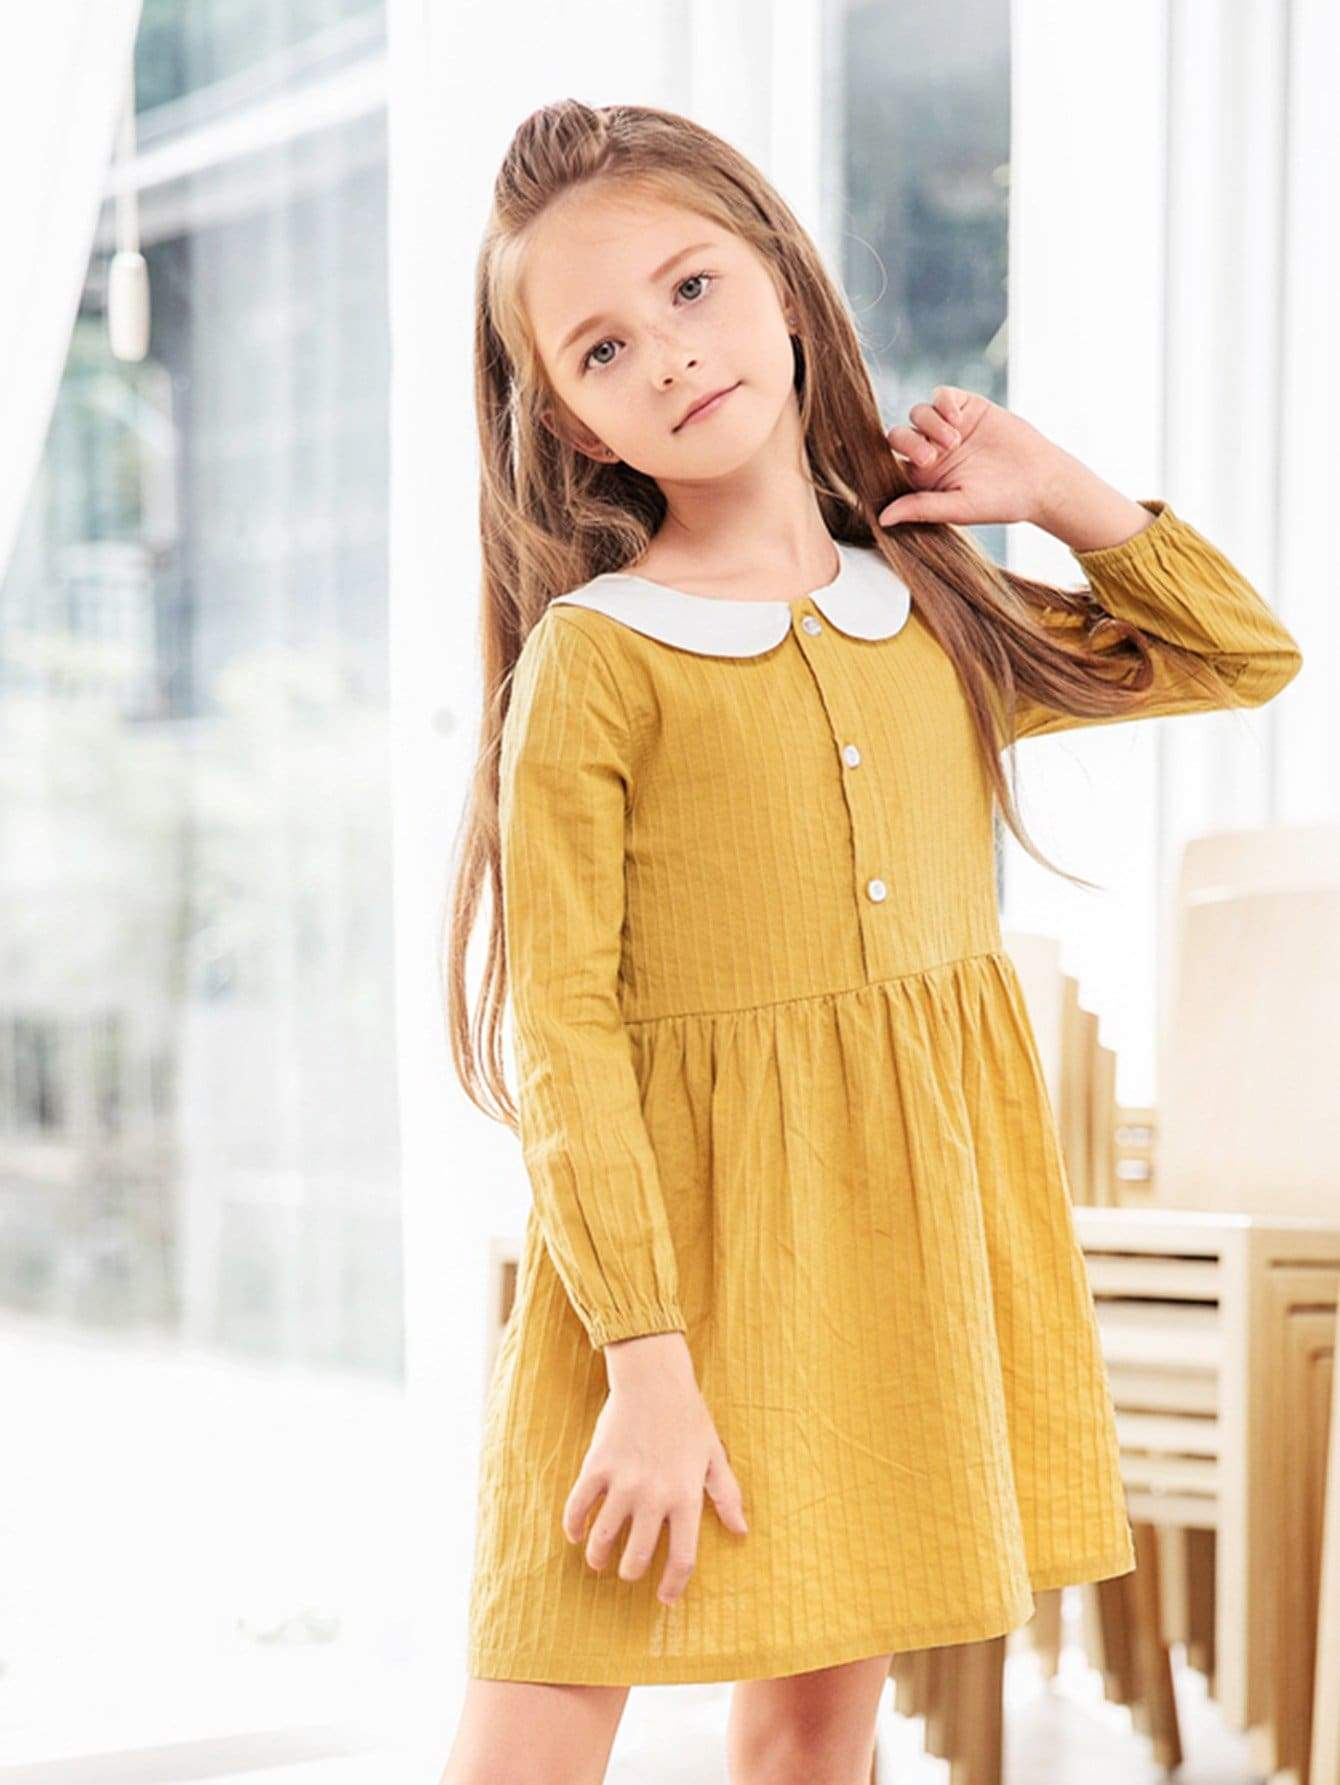 Girl on yellow dress